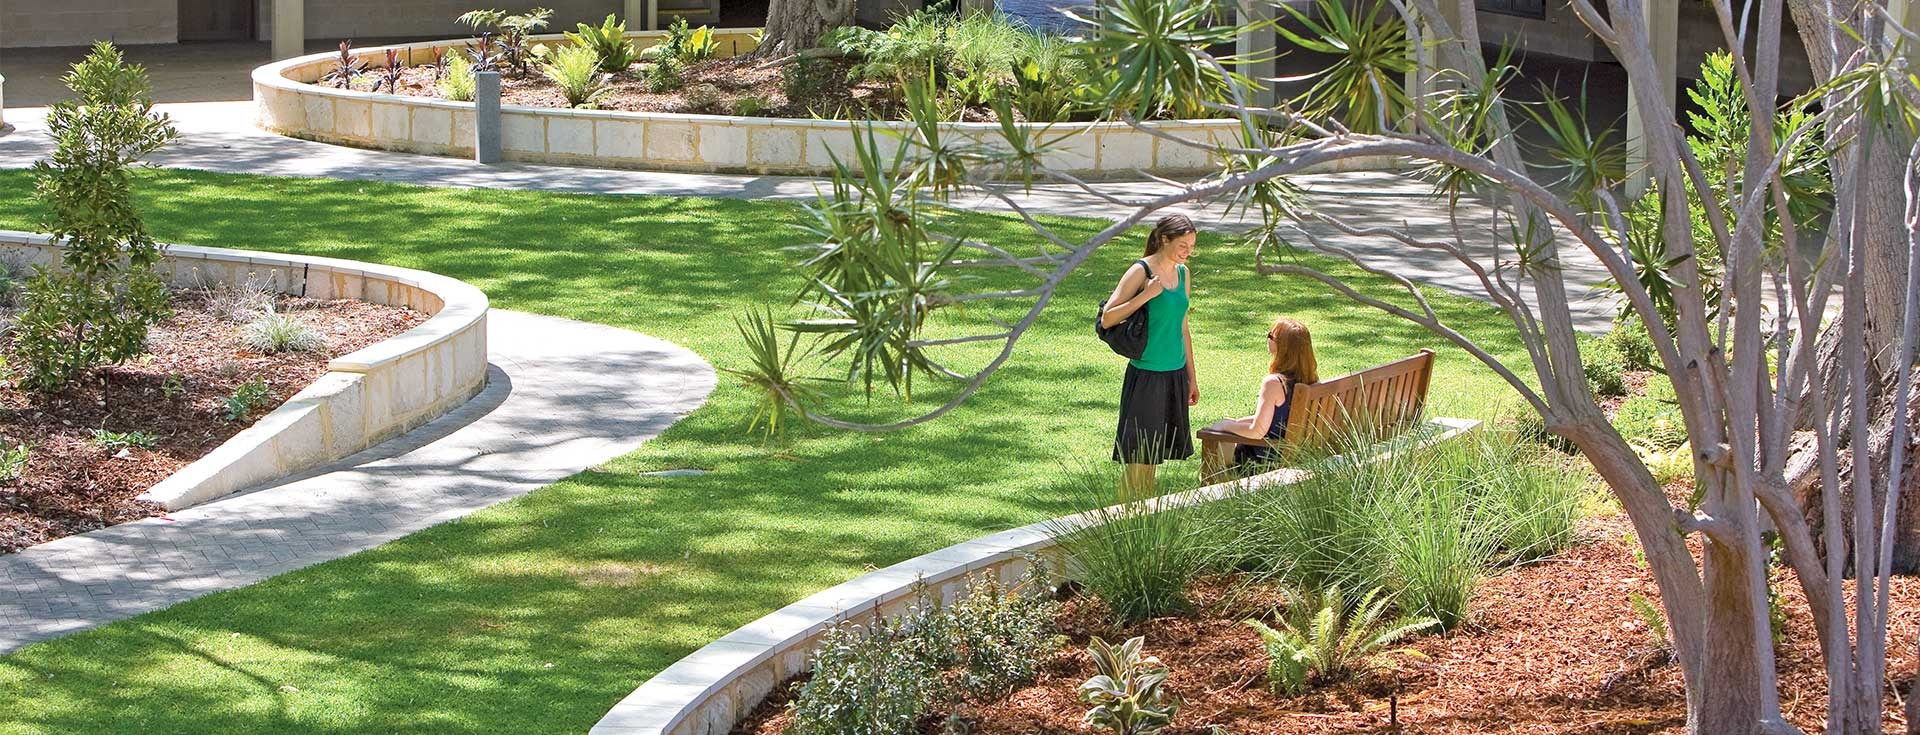 Image of two students talking